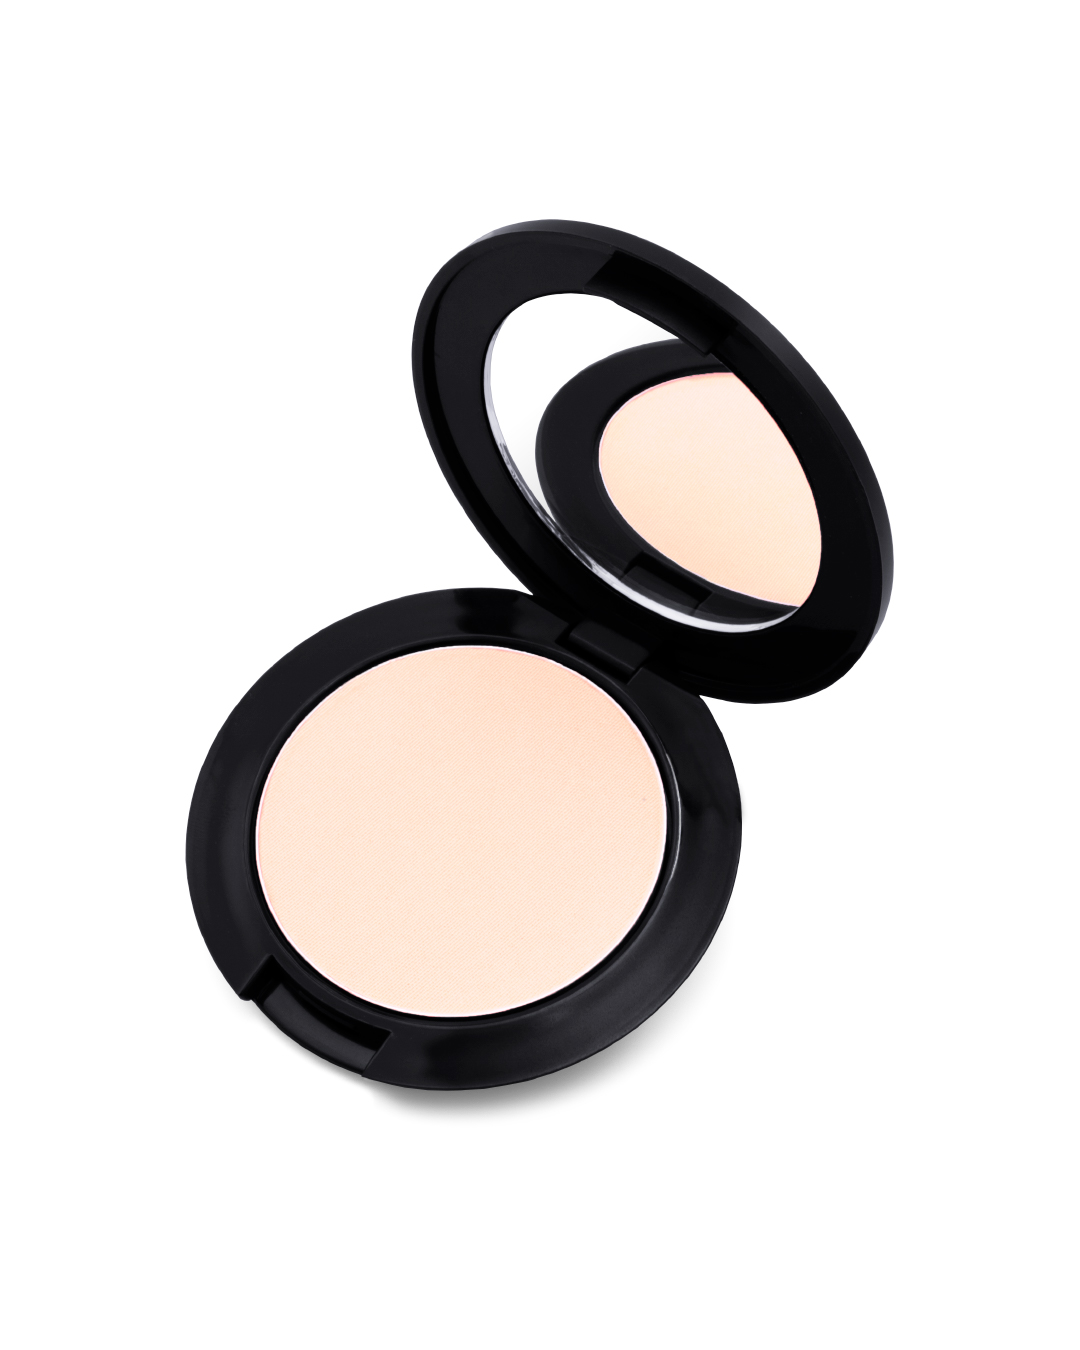 SPIR - OIL CONTROL PRESSED POWDER